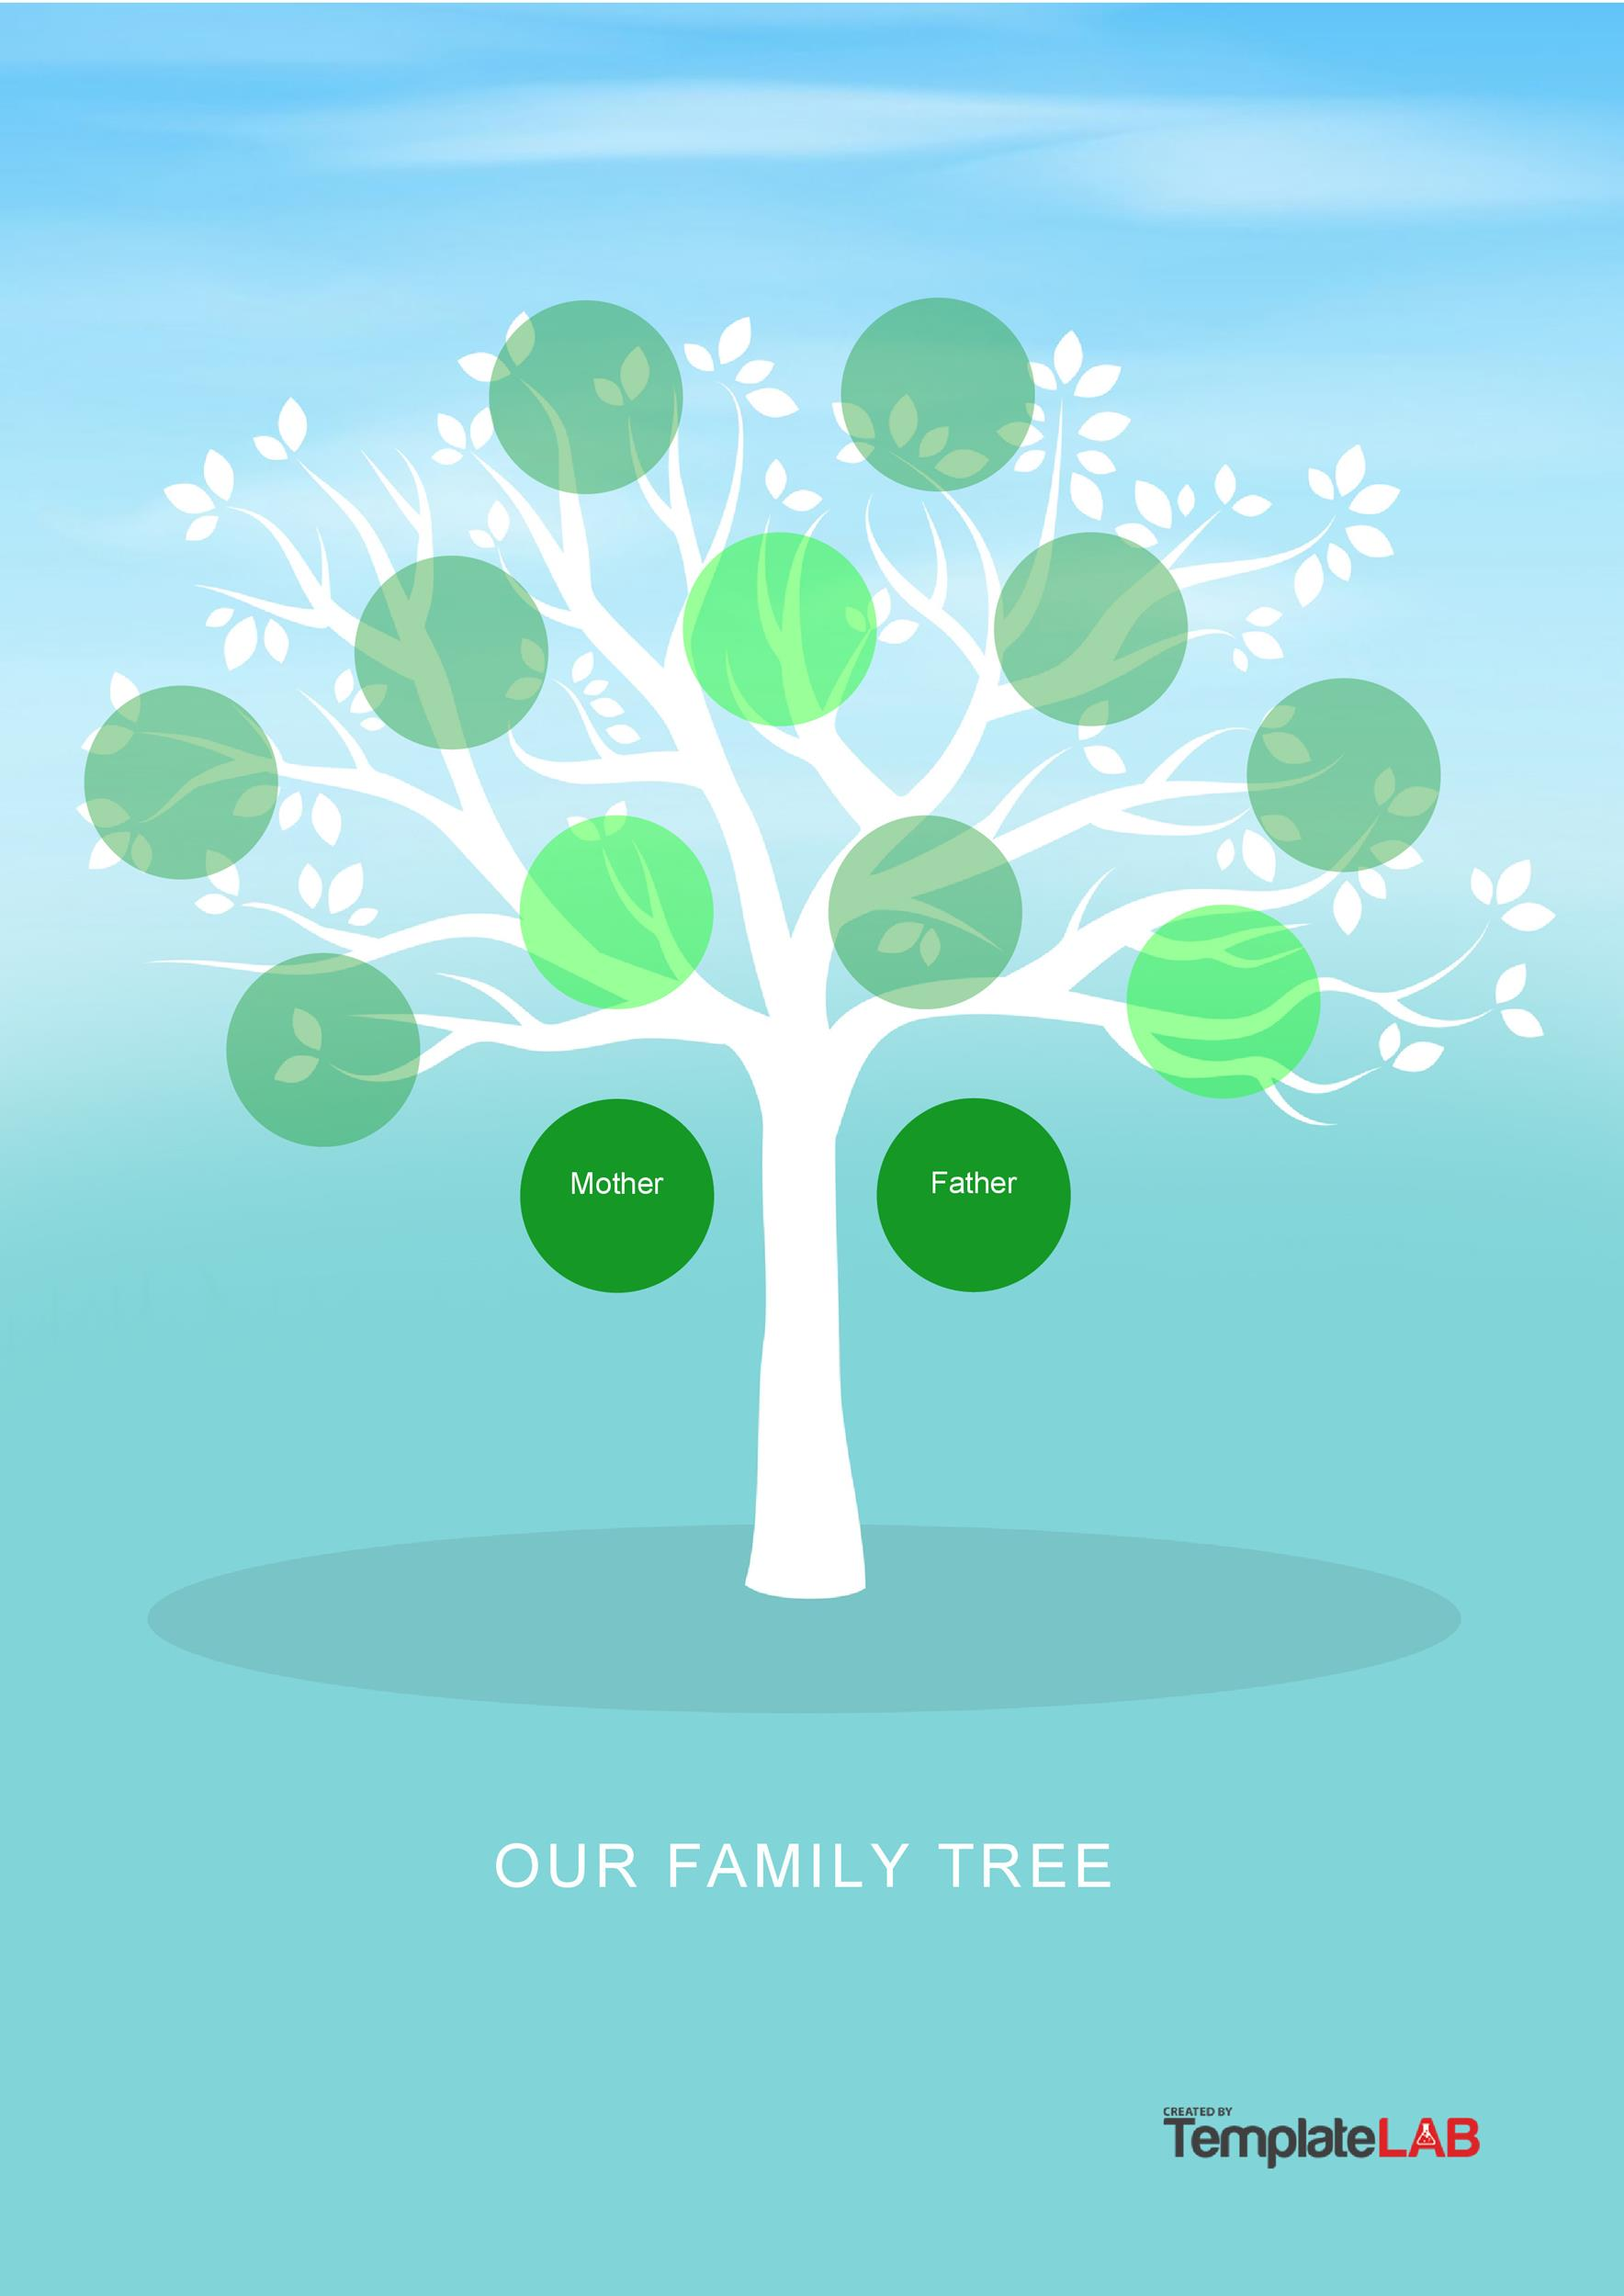 Family Tree Template For Kids from templatelab.com